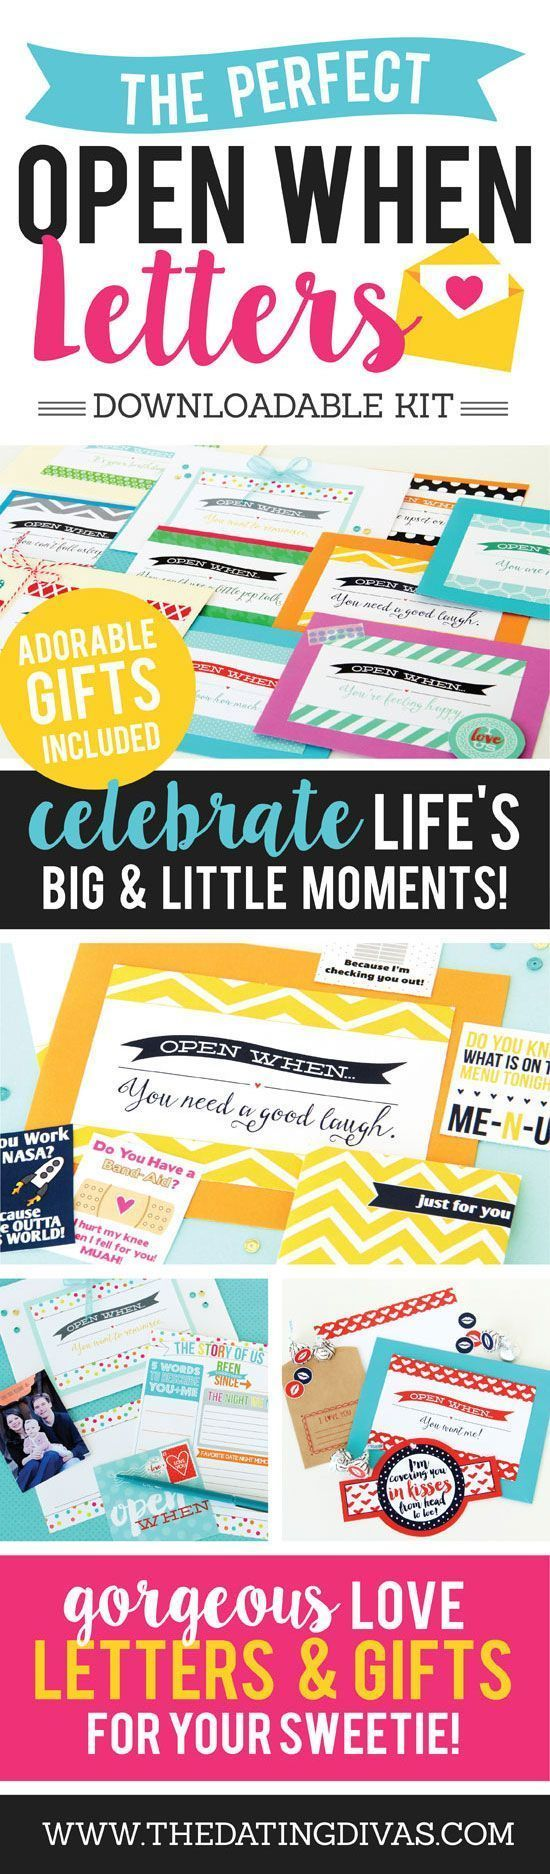 OPEN WHEN LETTERS! Perfect kit of love letters for the hubby or boyfriend!   birthdaydiy